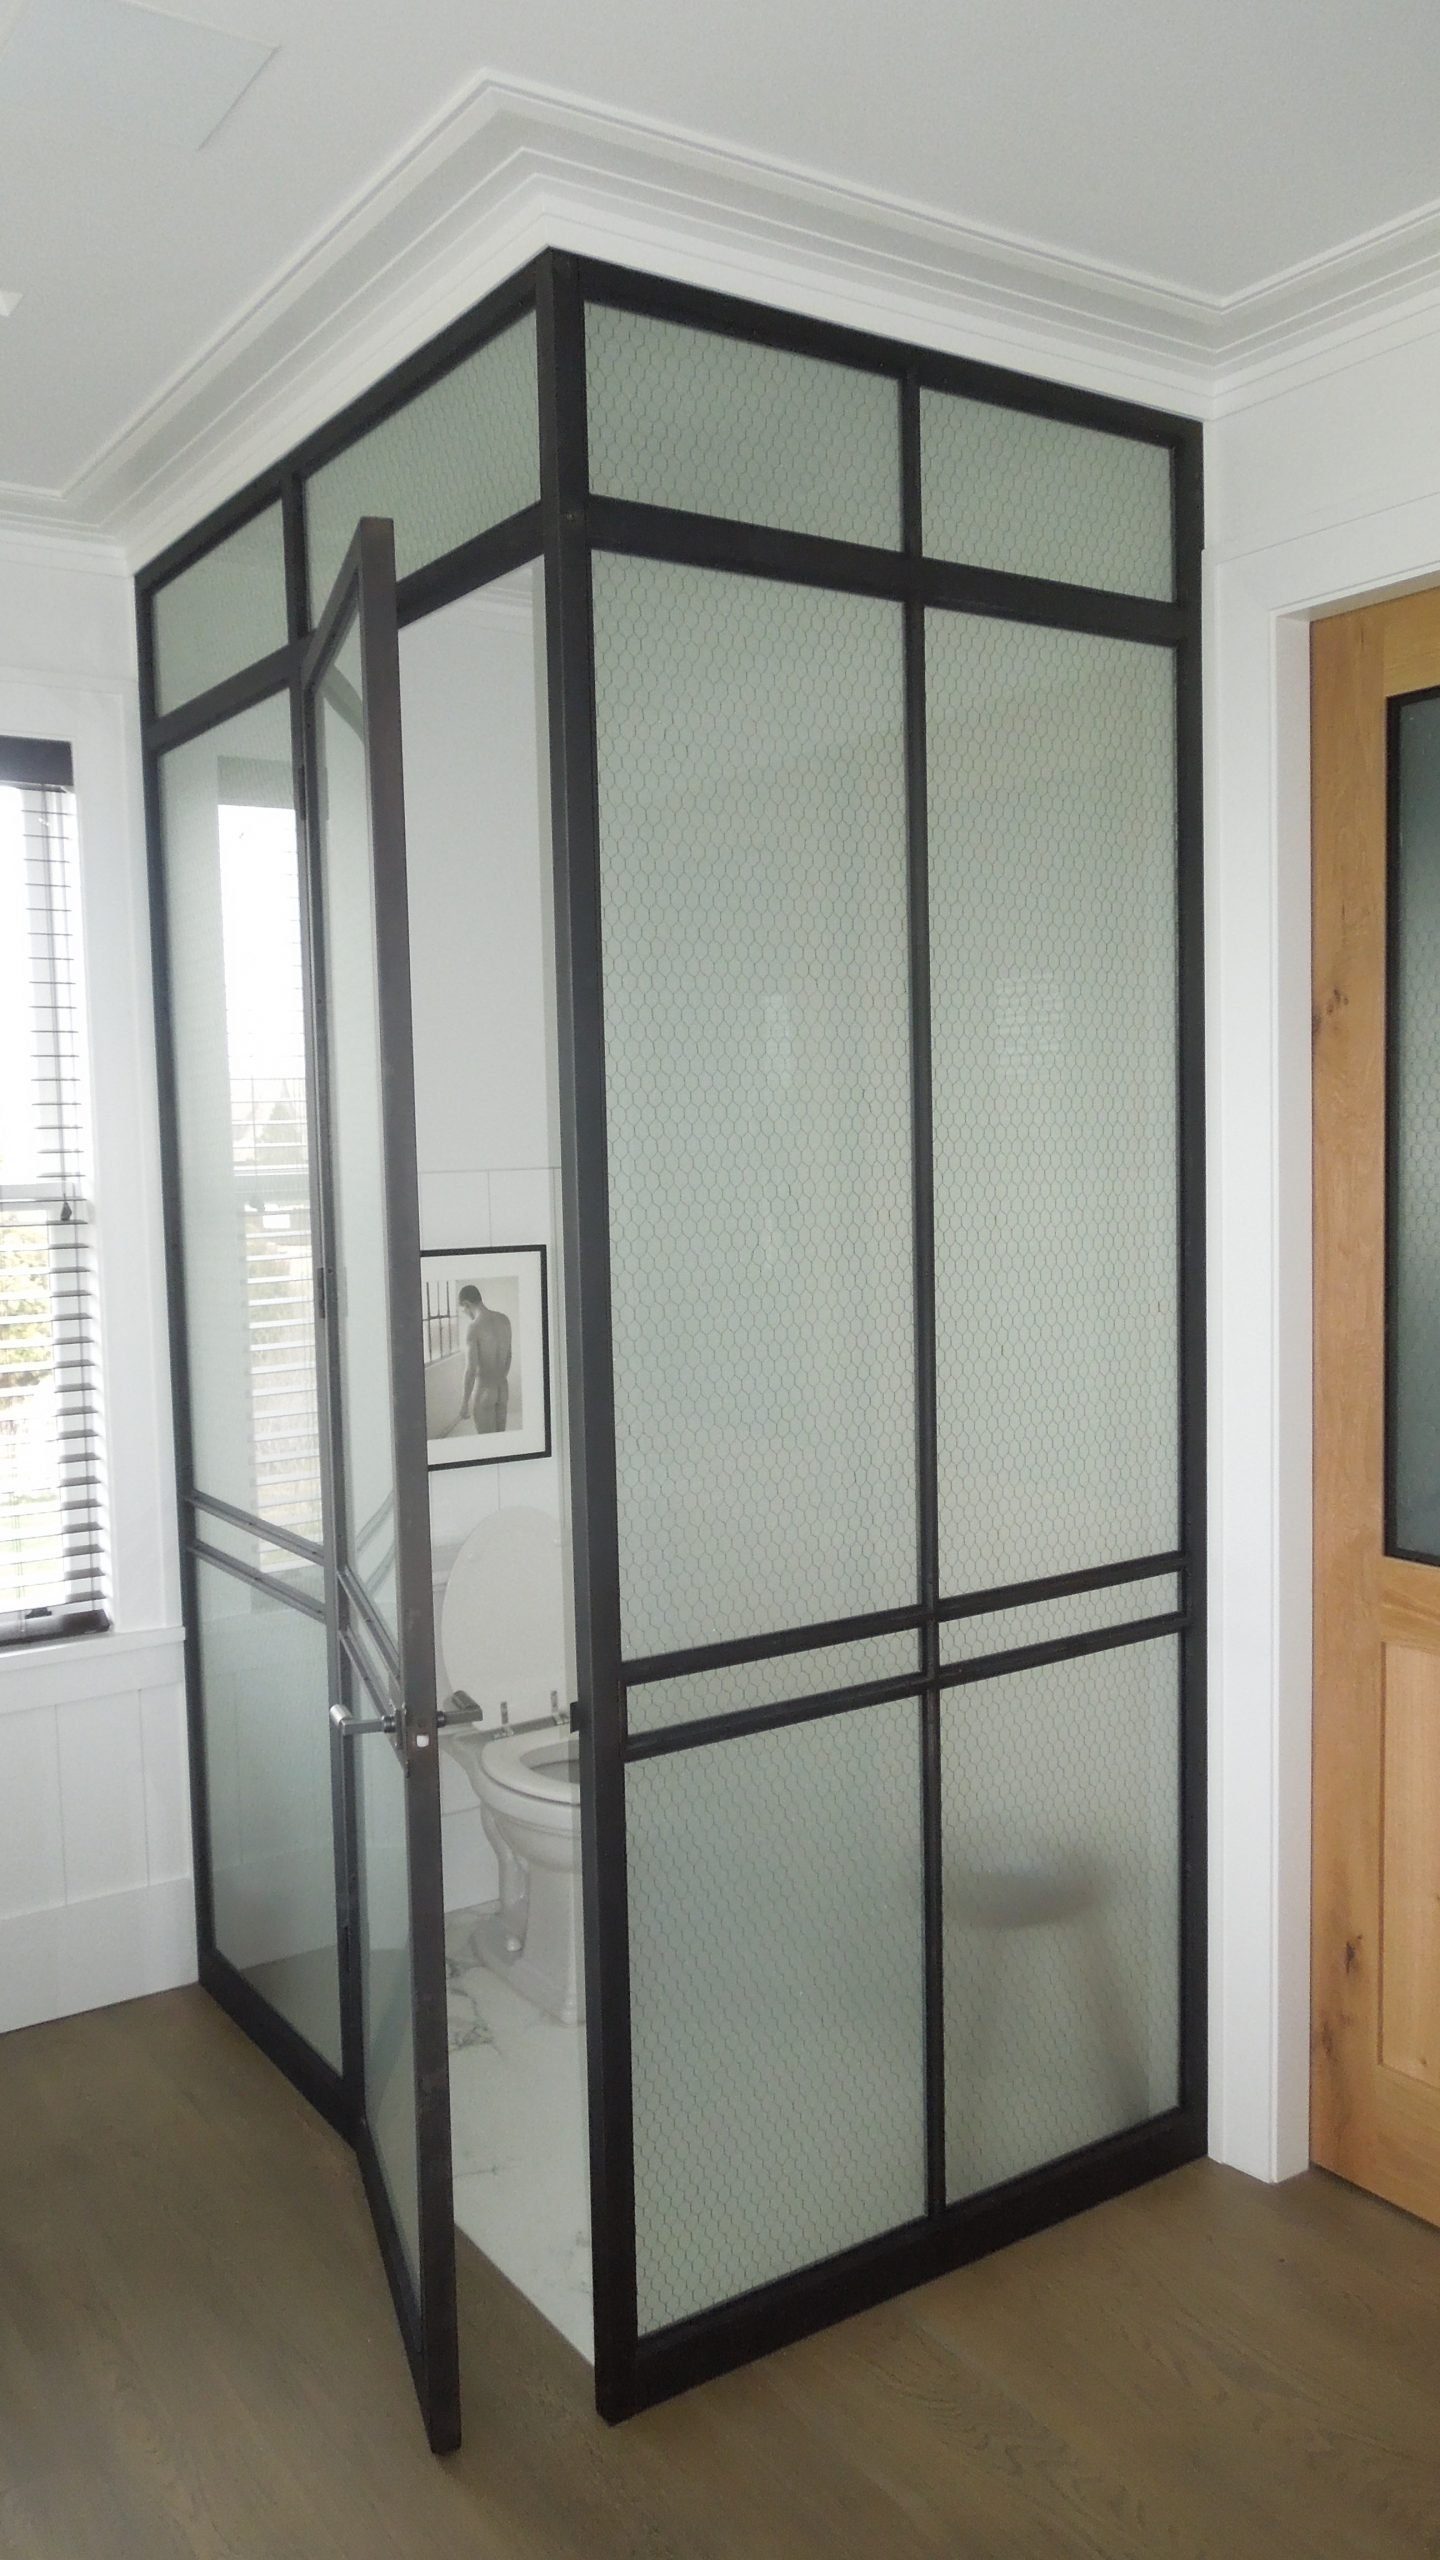 blackened_and_lacquered_stainless_toilet_enclosure